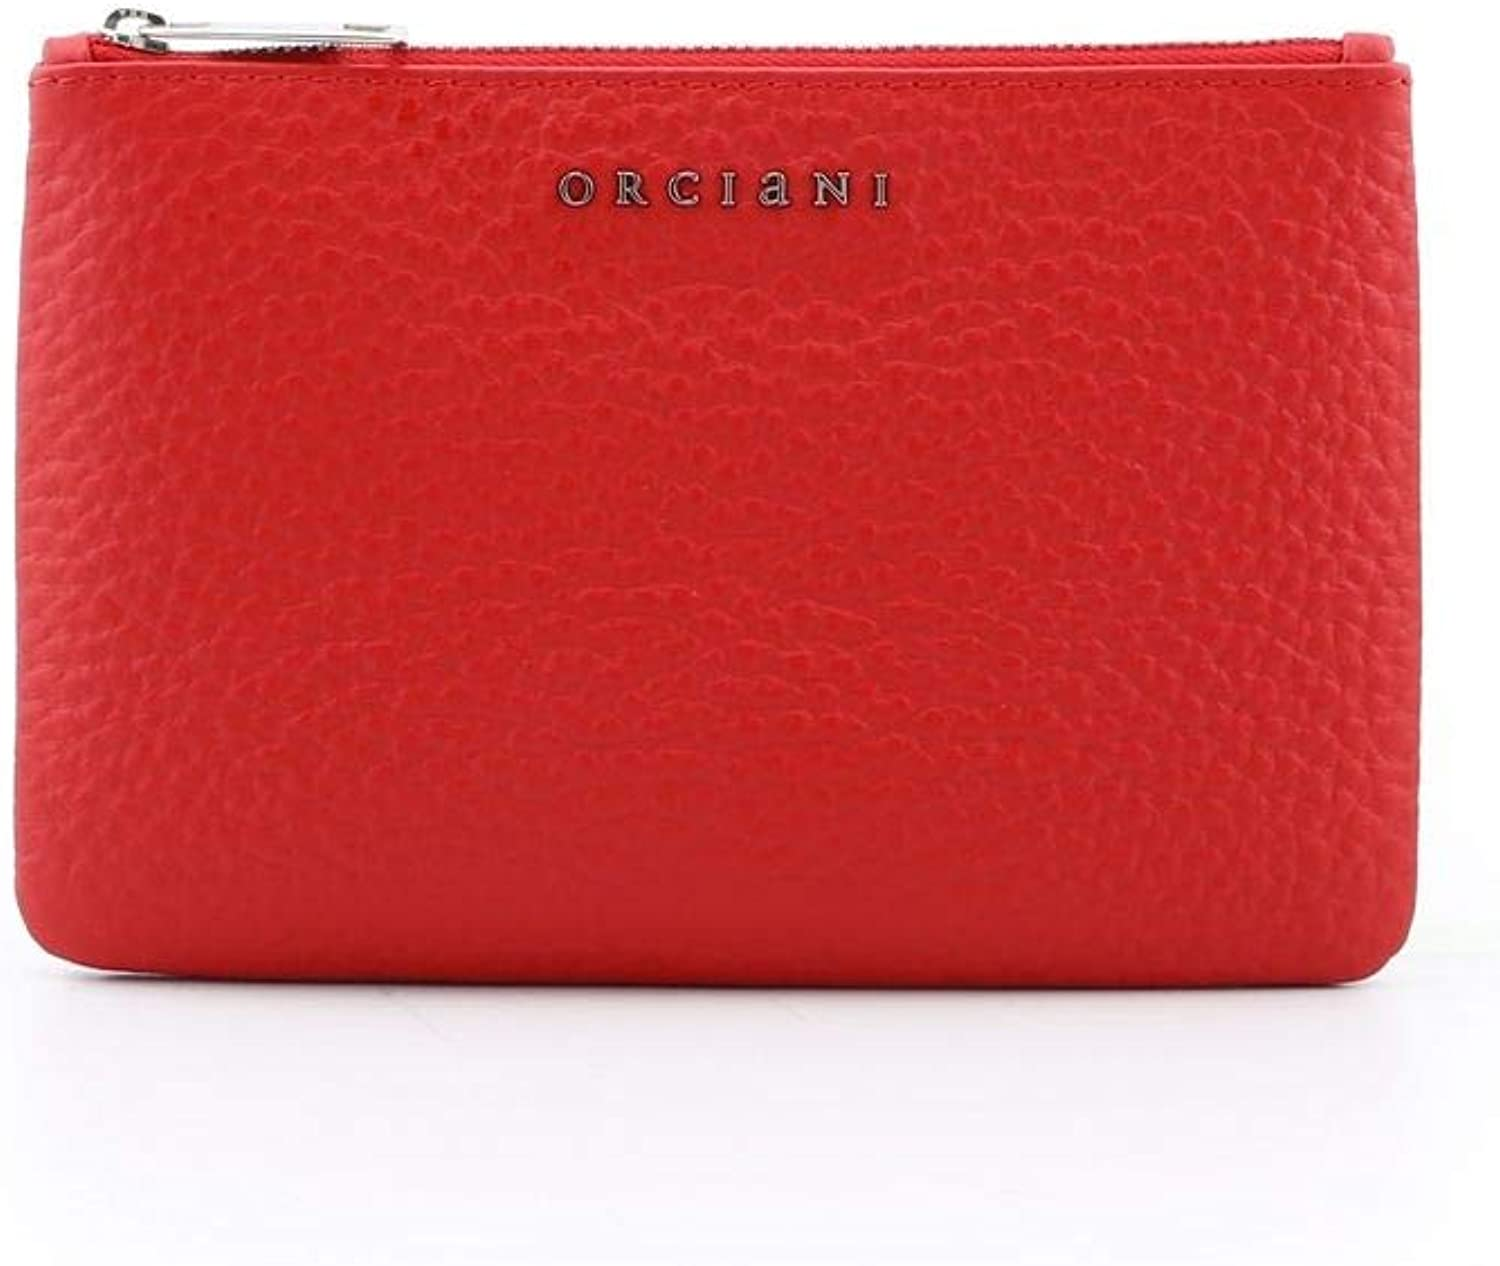 Orciani Women's SD0135SOFTRED Red Leather Clutch